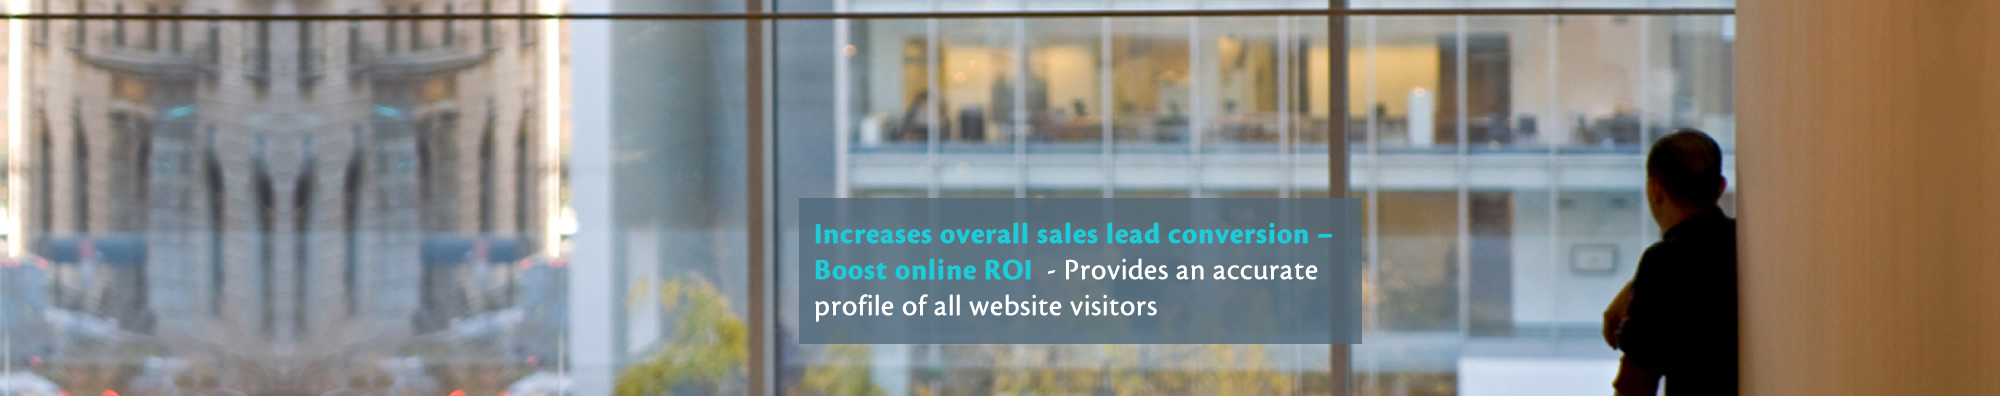 Increases overall sales lead conversion – Boost online ROI - Provides an accurate profile of all website visitors